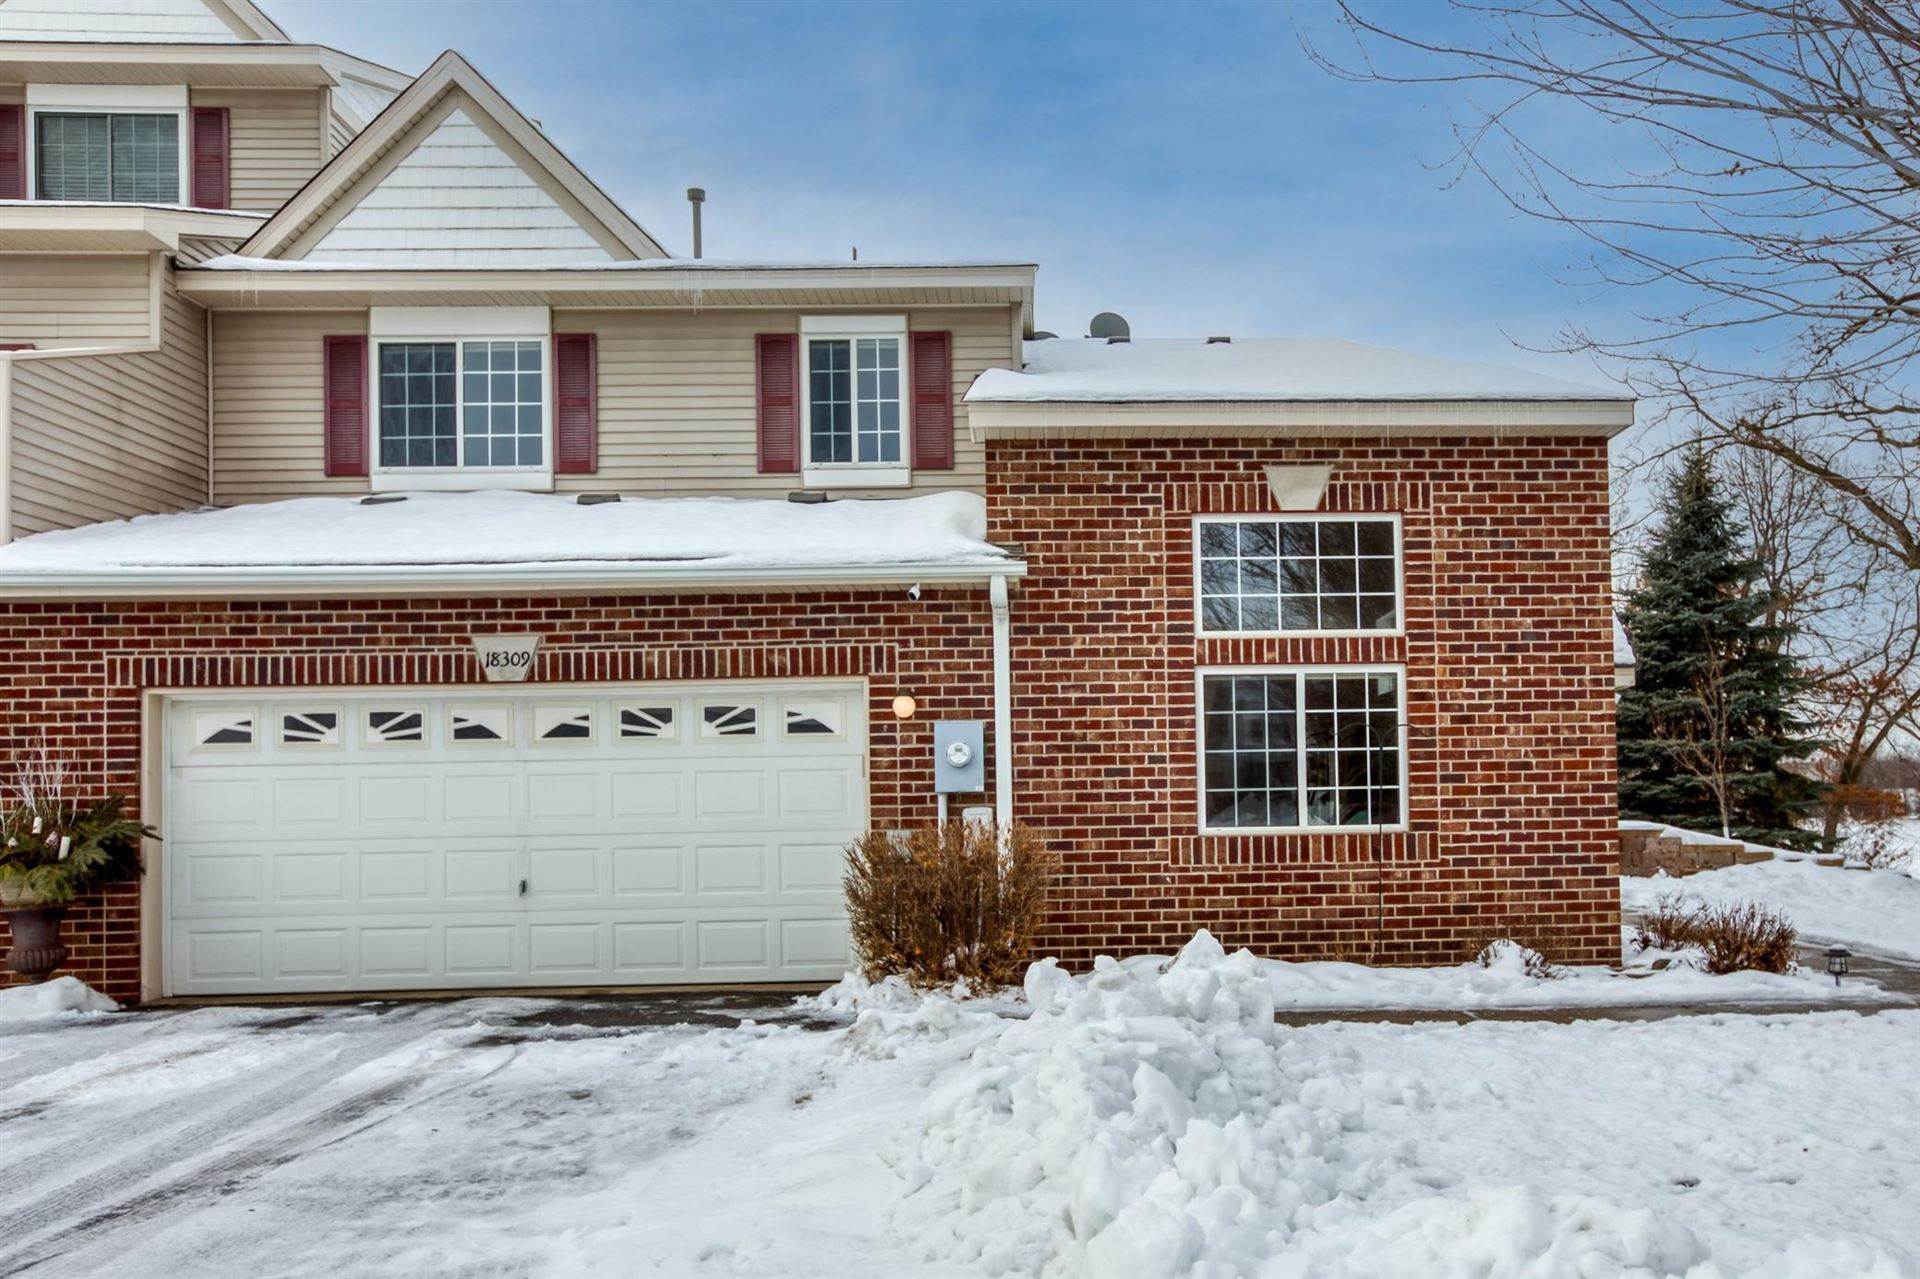 Photo of 18309 Key West Court #316D, Lakeville, MN 55044 (MLS # 5699855)